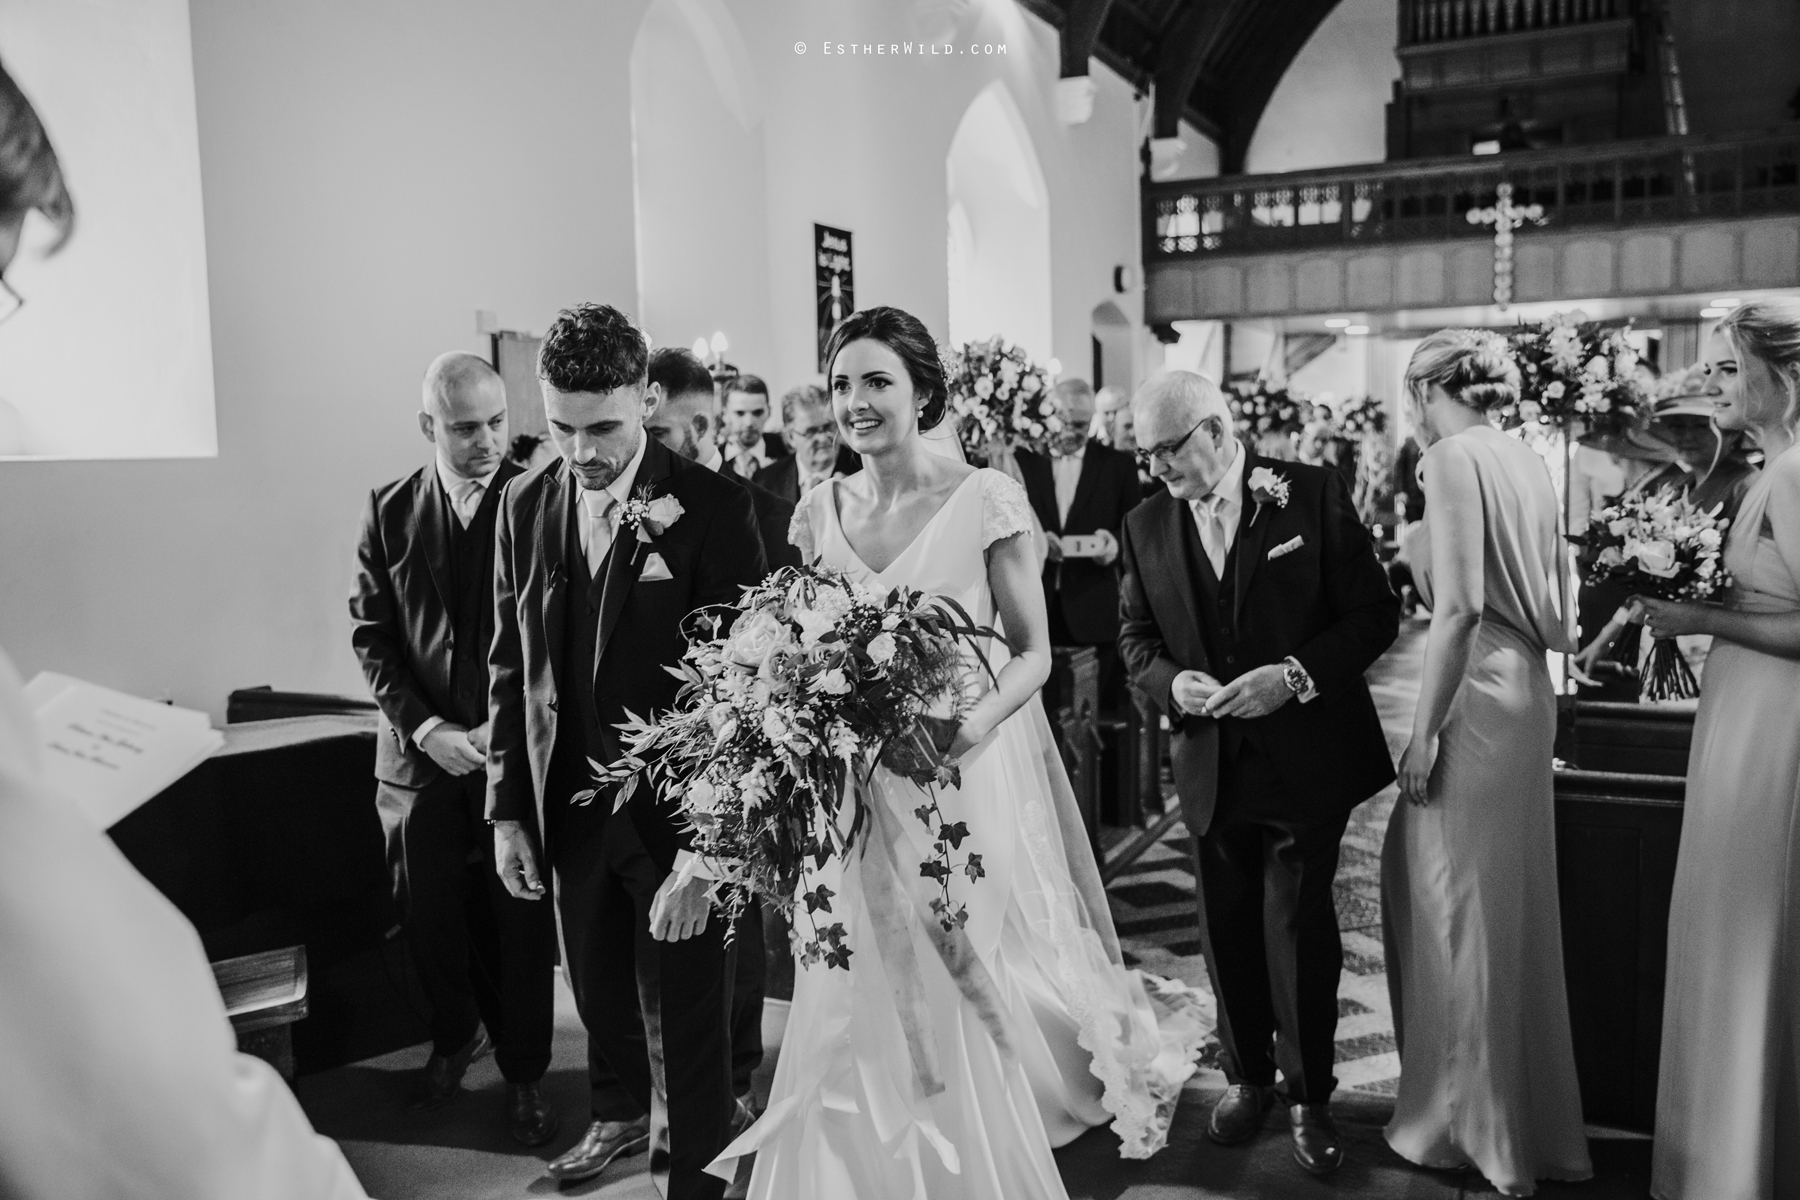 Wootton_Wedding_Copyright_Esther_Wild_Photographer_IMG_0861-2.jpg